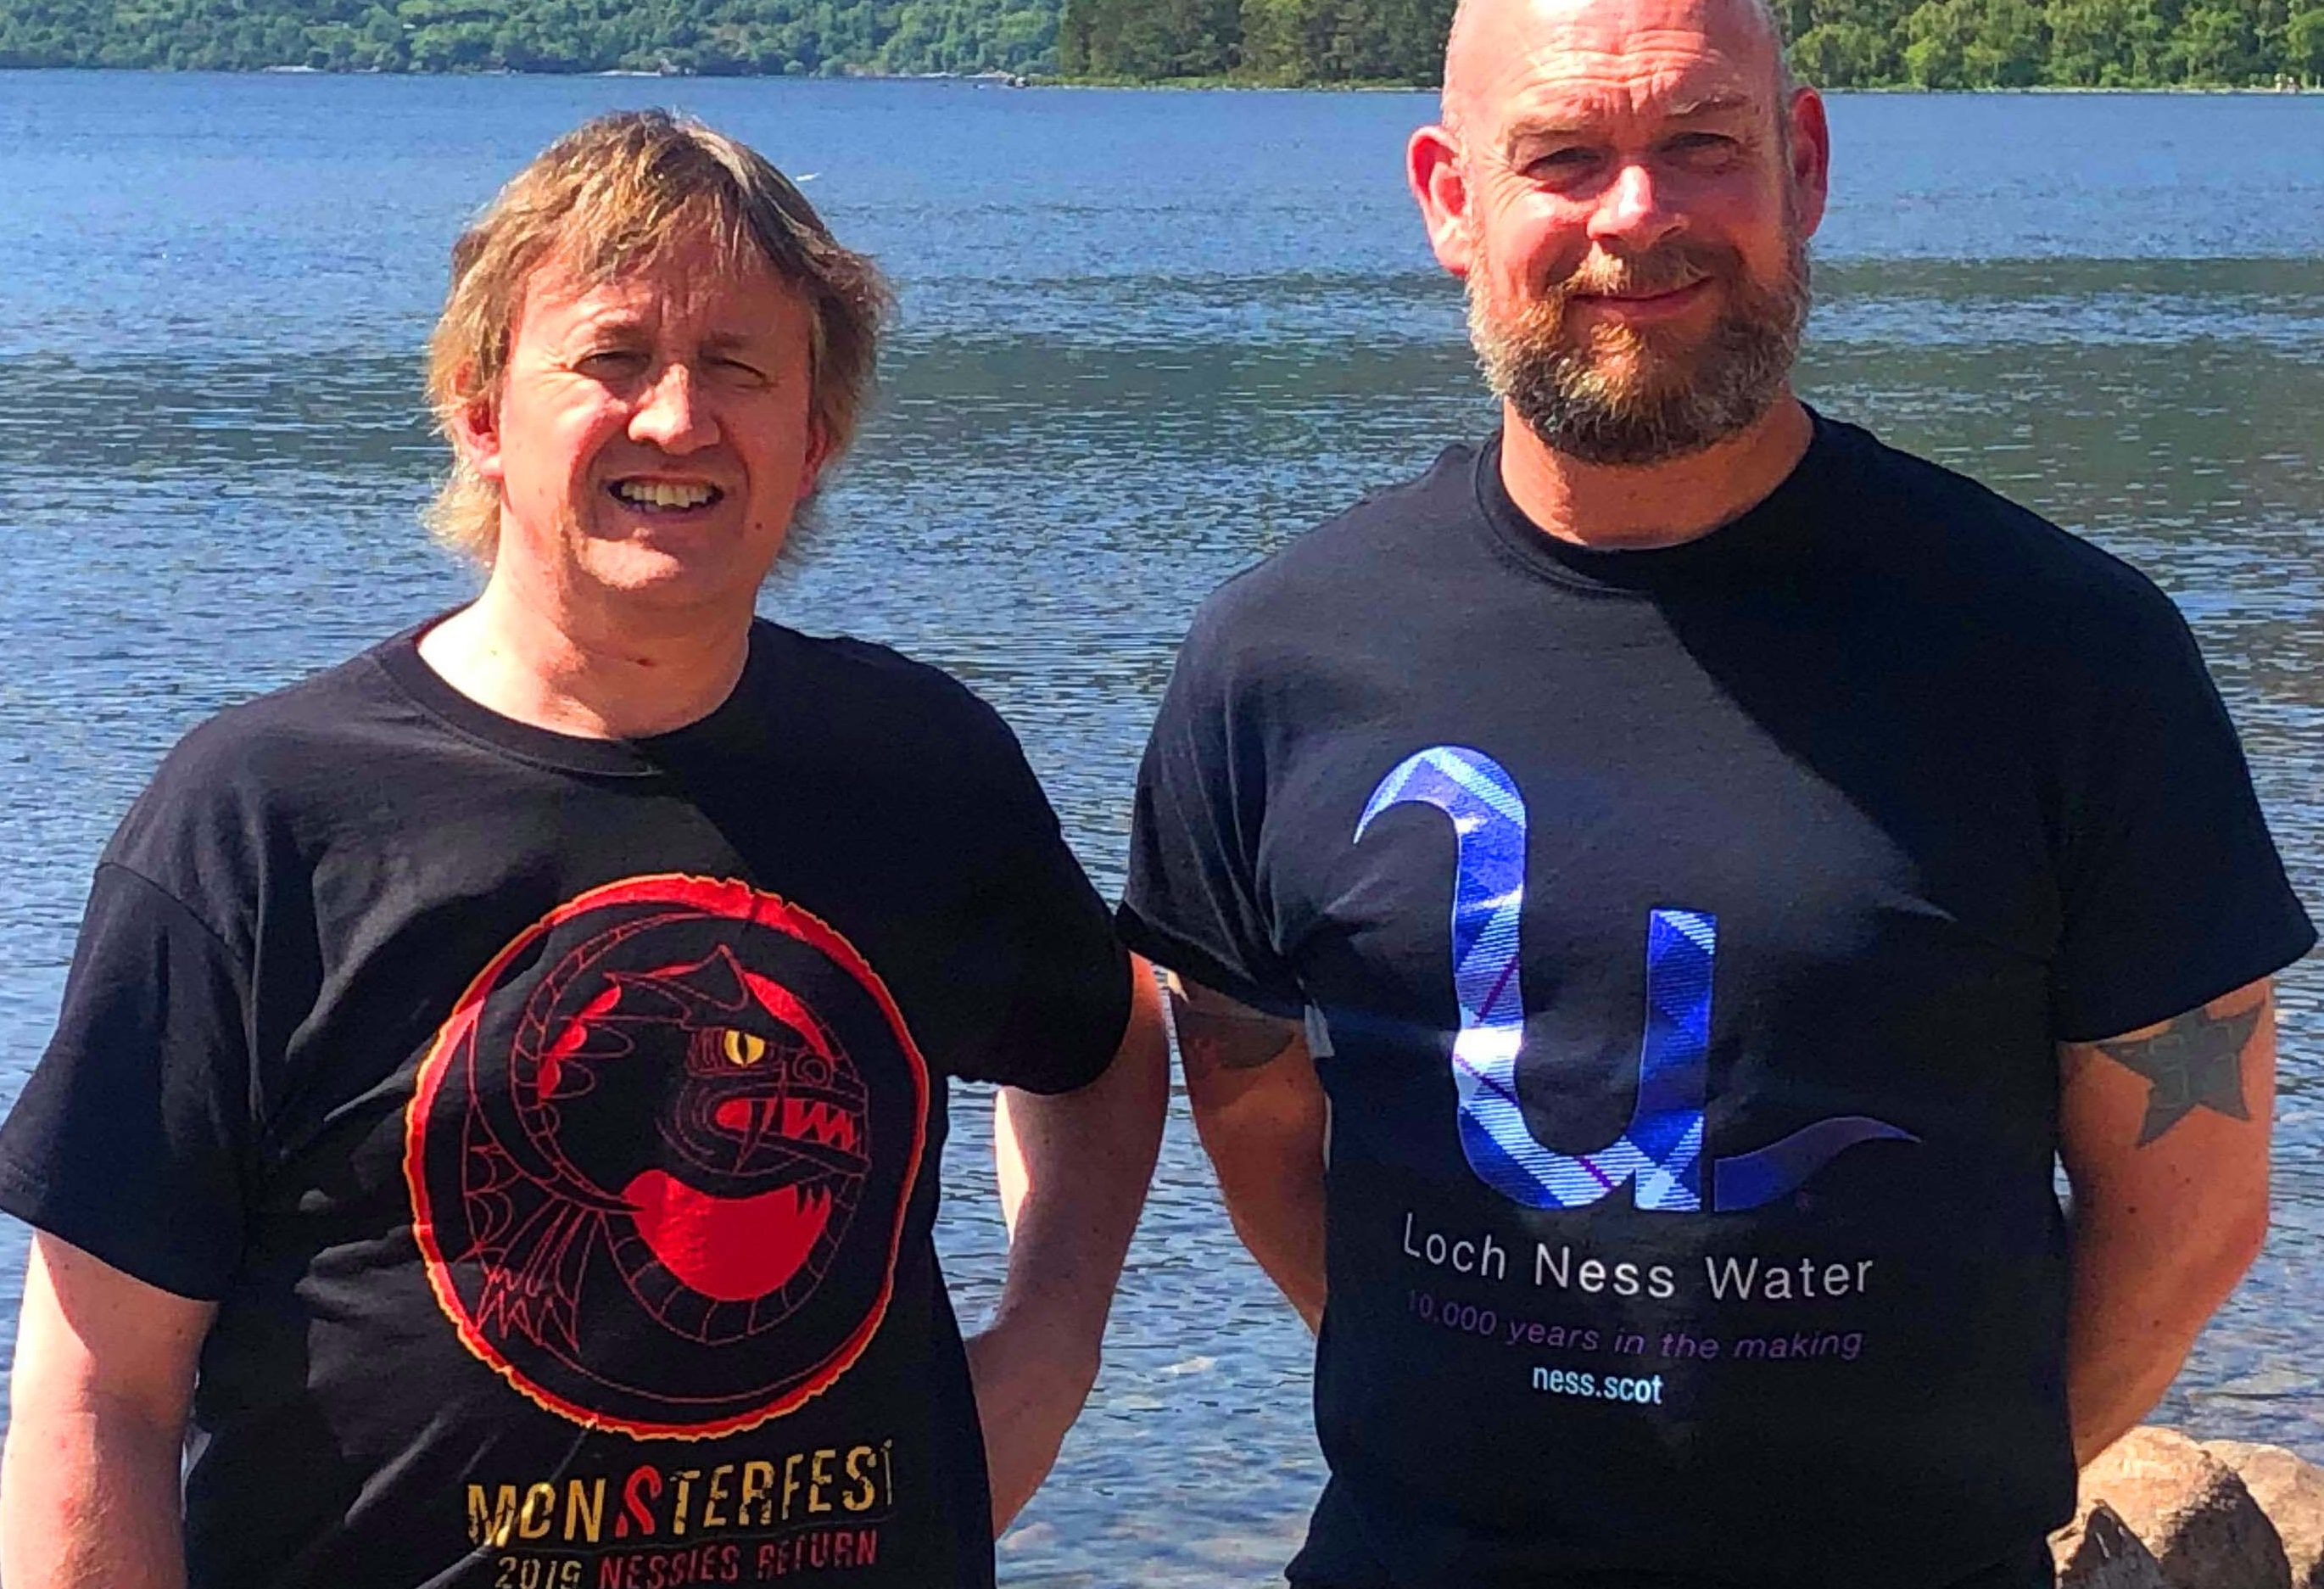 Festival Director Mark Allison and Loch Ness Water founder John Oag on the banks of Loch Ness as the event is launched for a second year